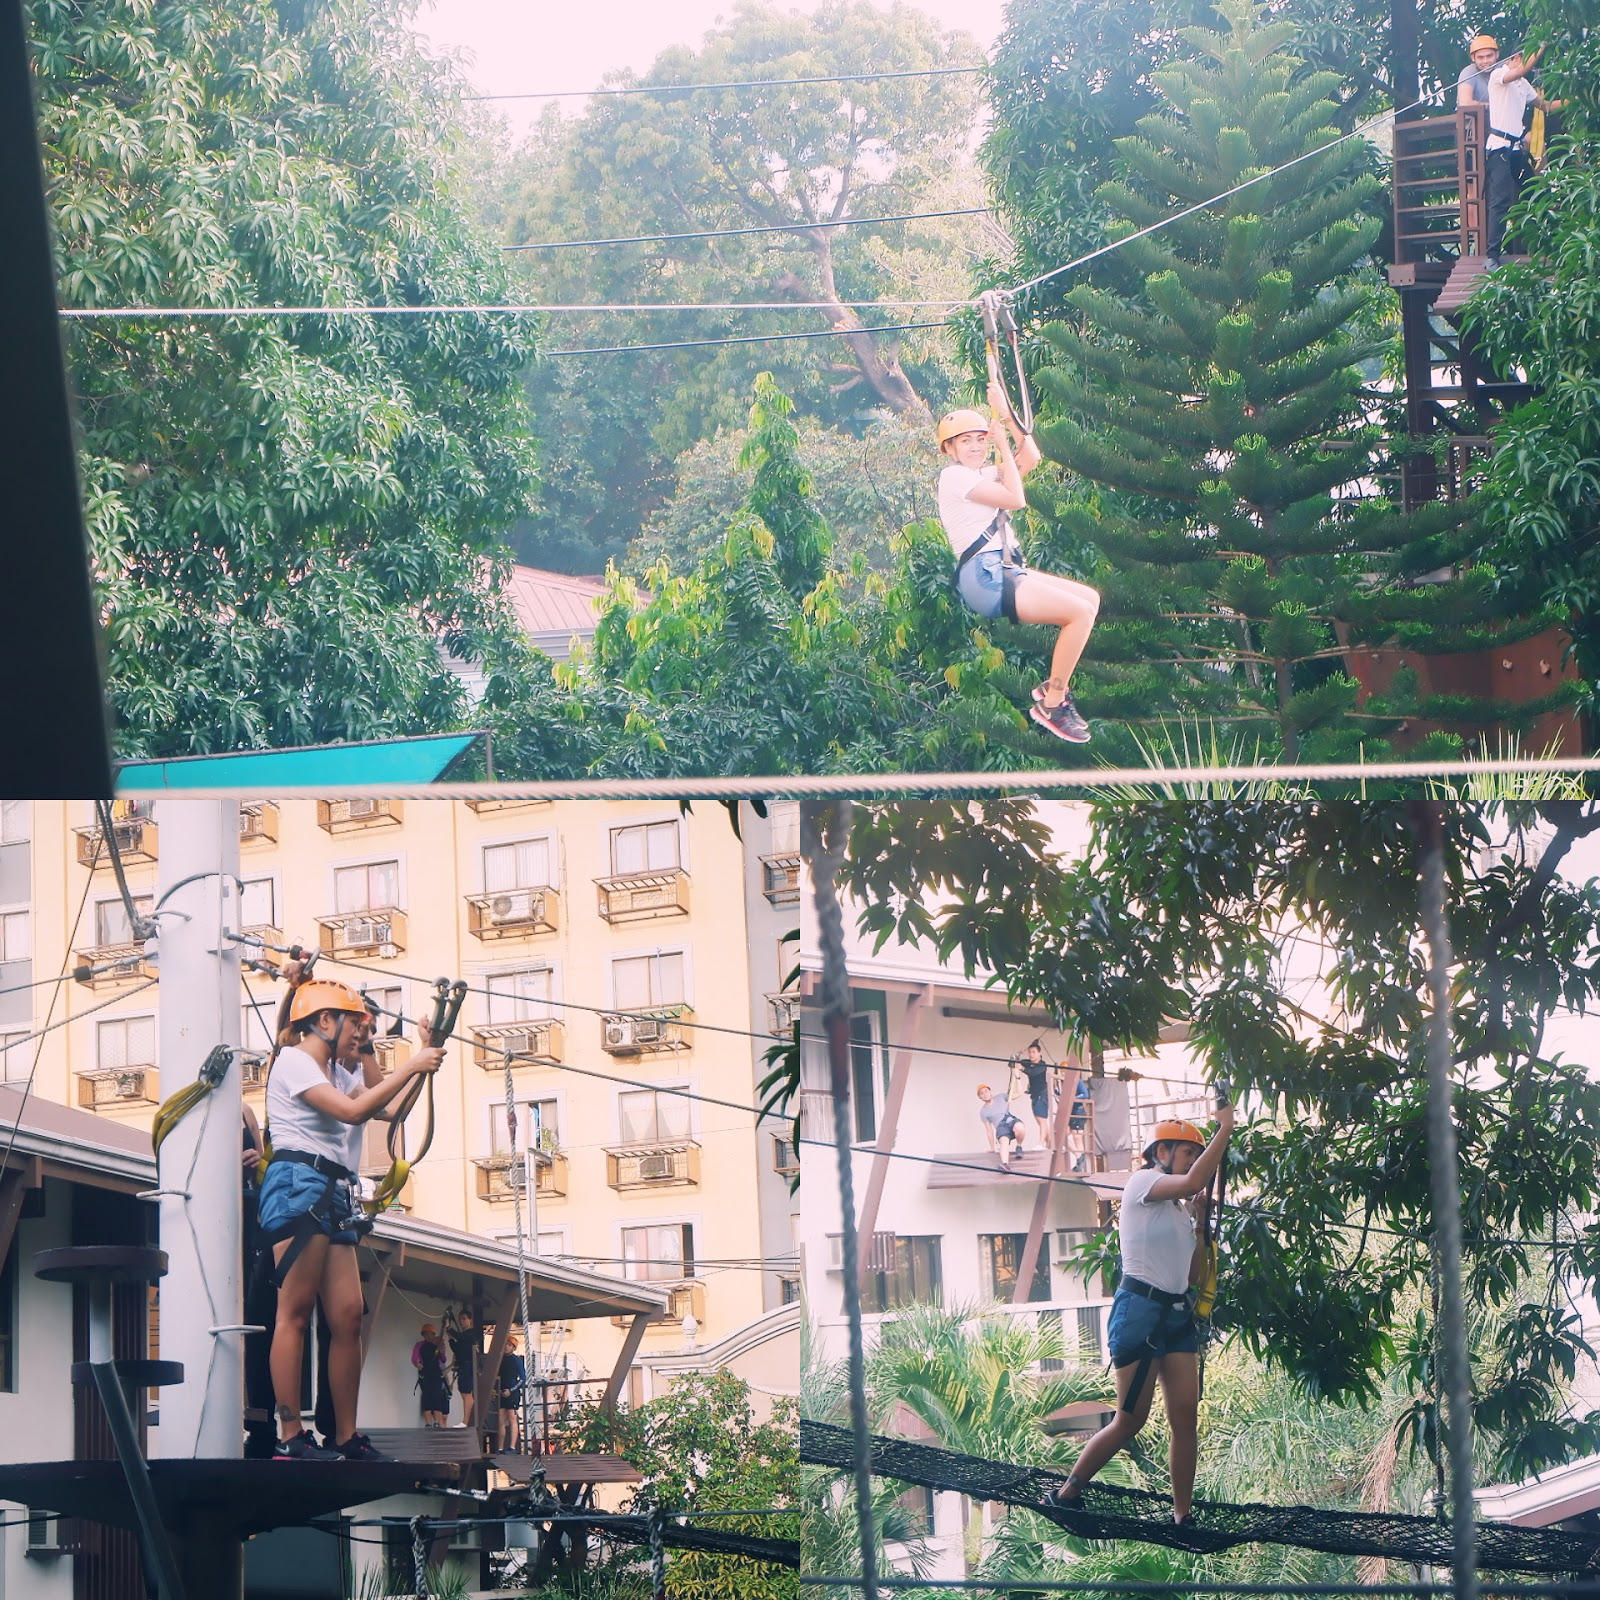 Activities like zip line in selah garden hotel